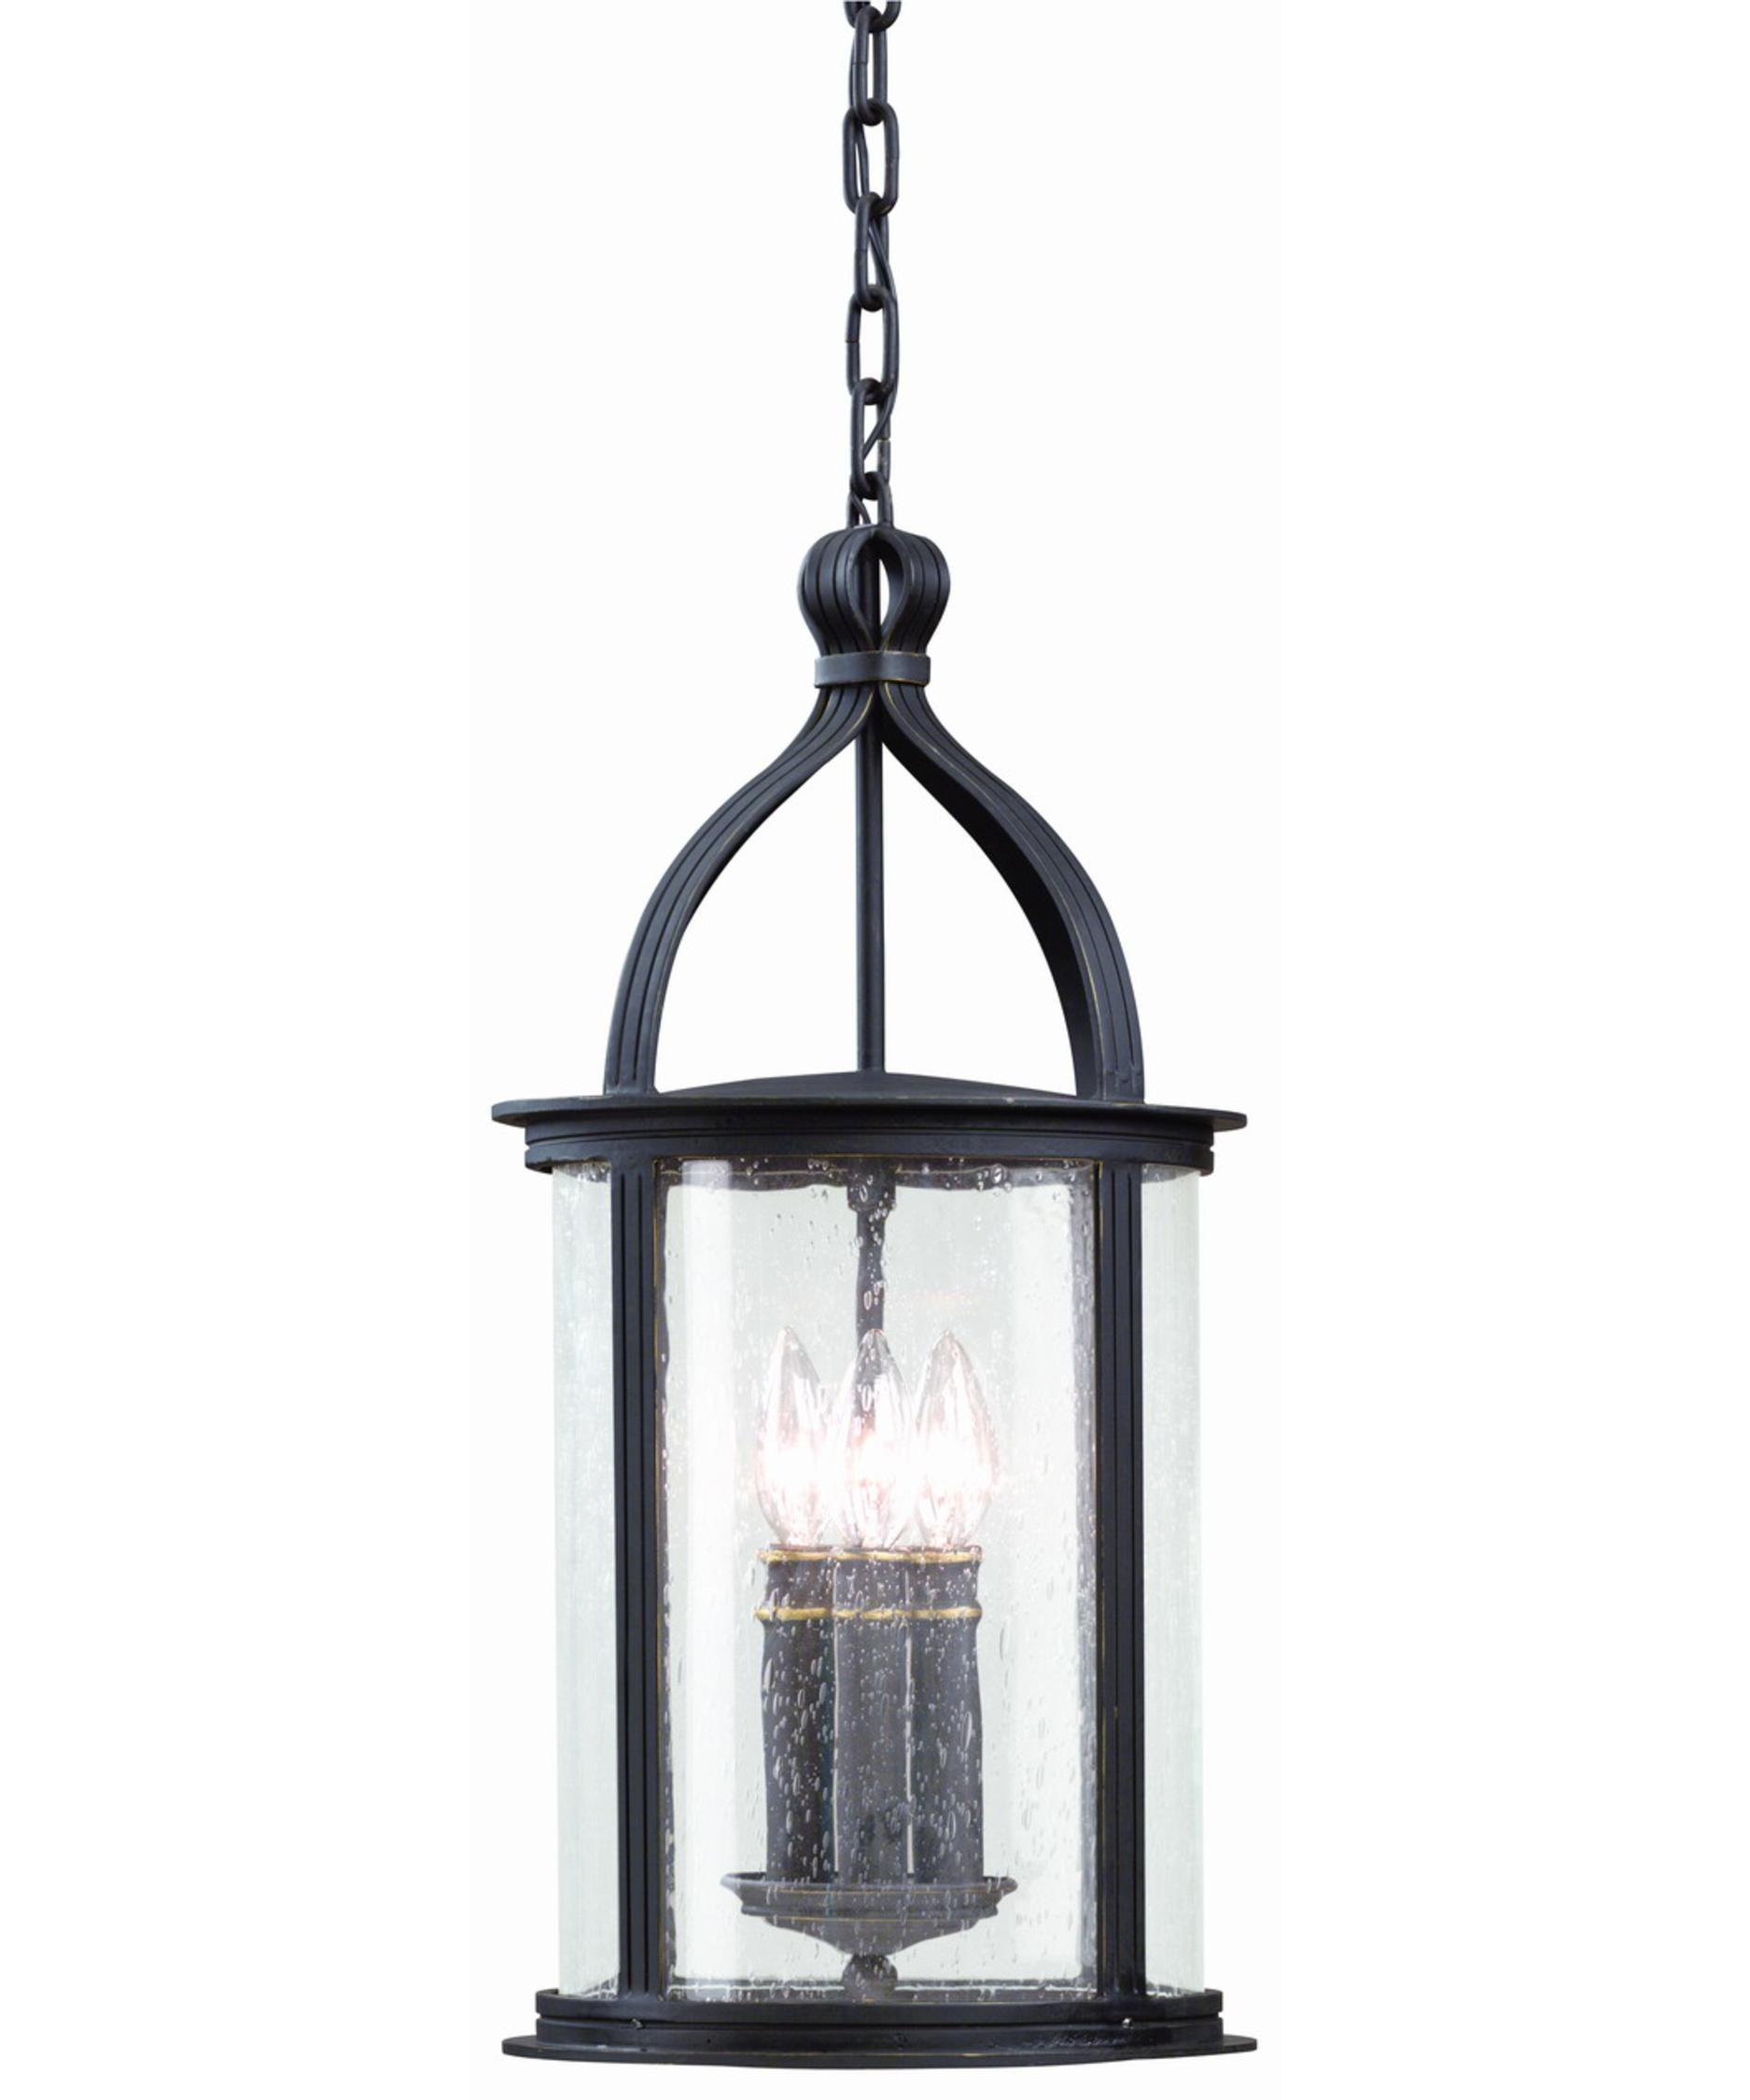 Outdoor hanging lighting - Shown In Forged Black Finish And Heritage Seeded Glass